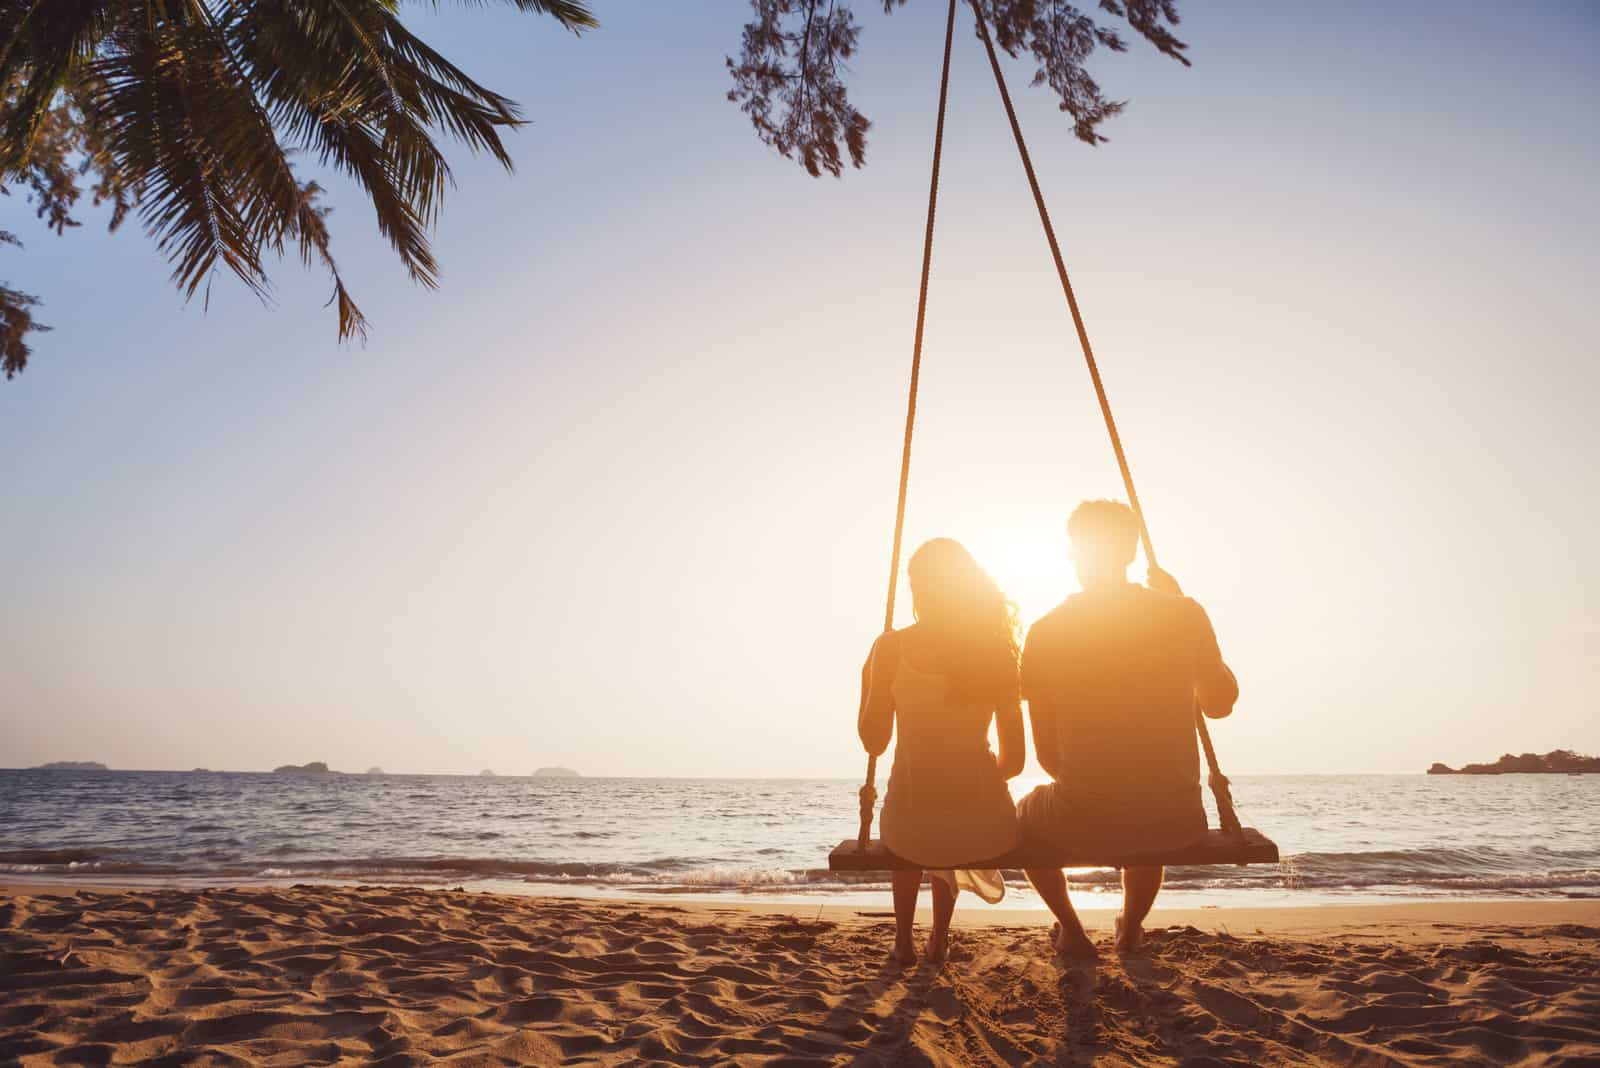 a man and a woman are swinging on a swing next to the beach